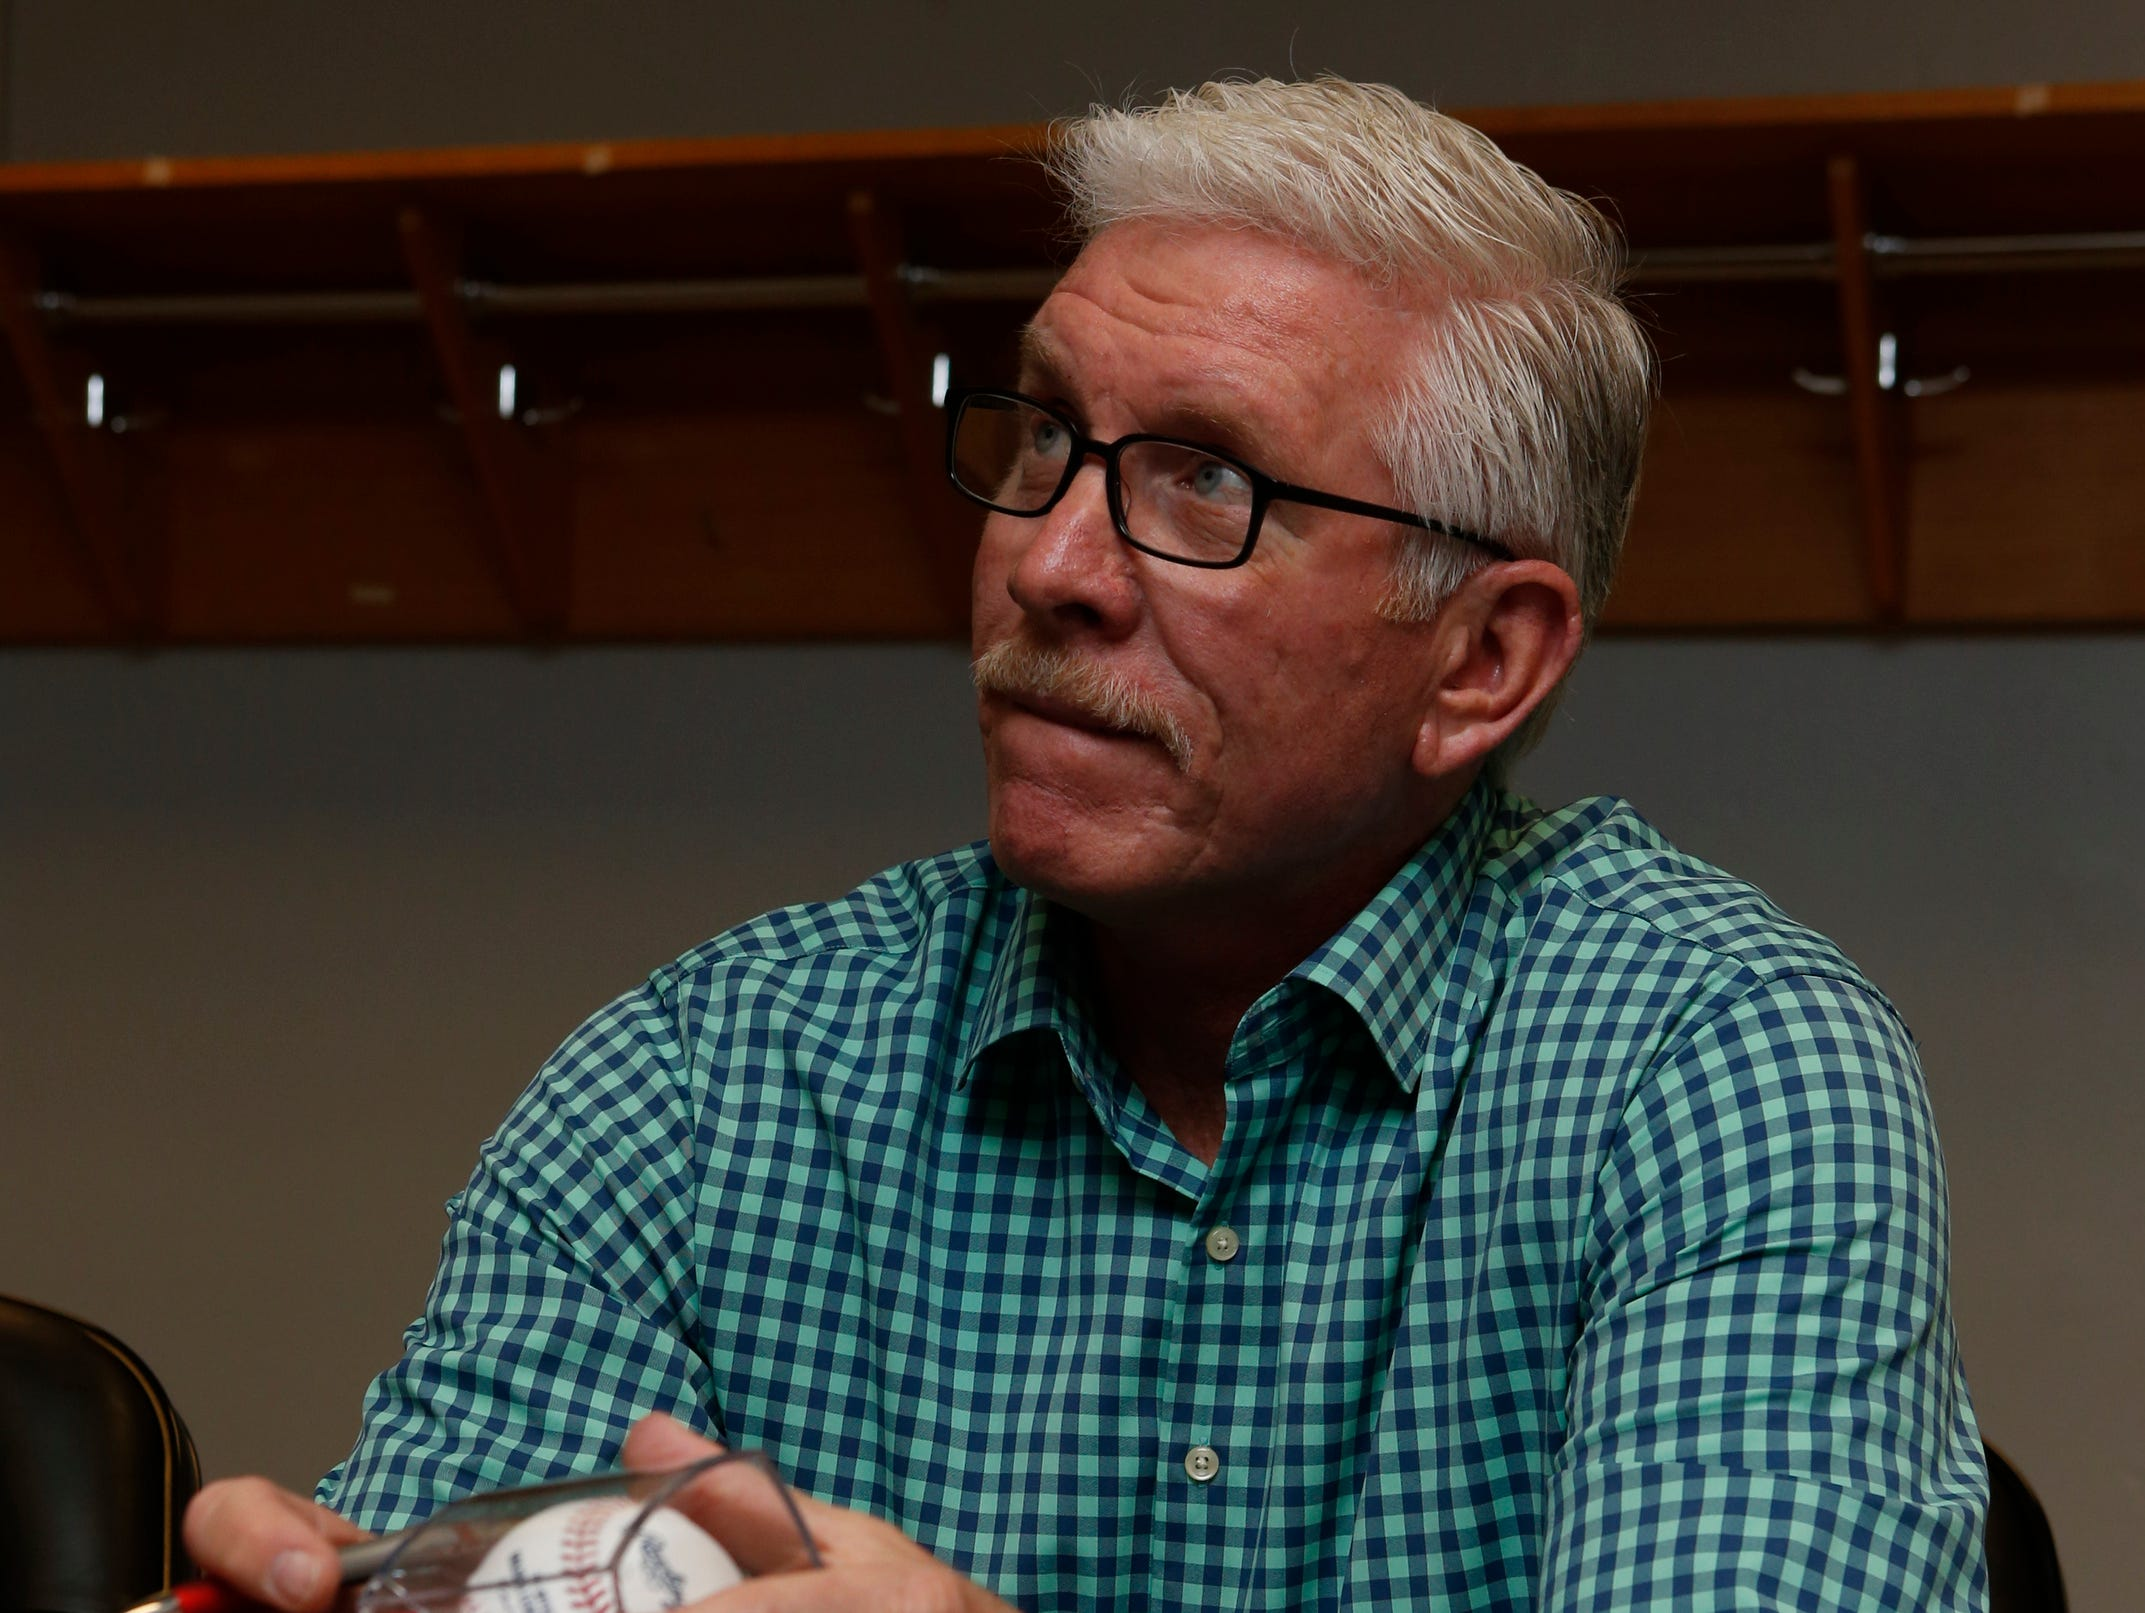 Mike Schmidt signs baseballs for raffle before the Delaware Sports Awards banquet at the Bob Carpenter Center Wednesday.